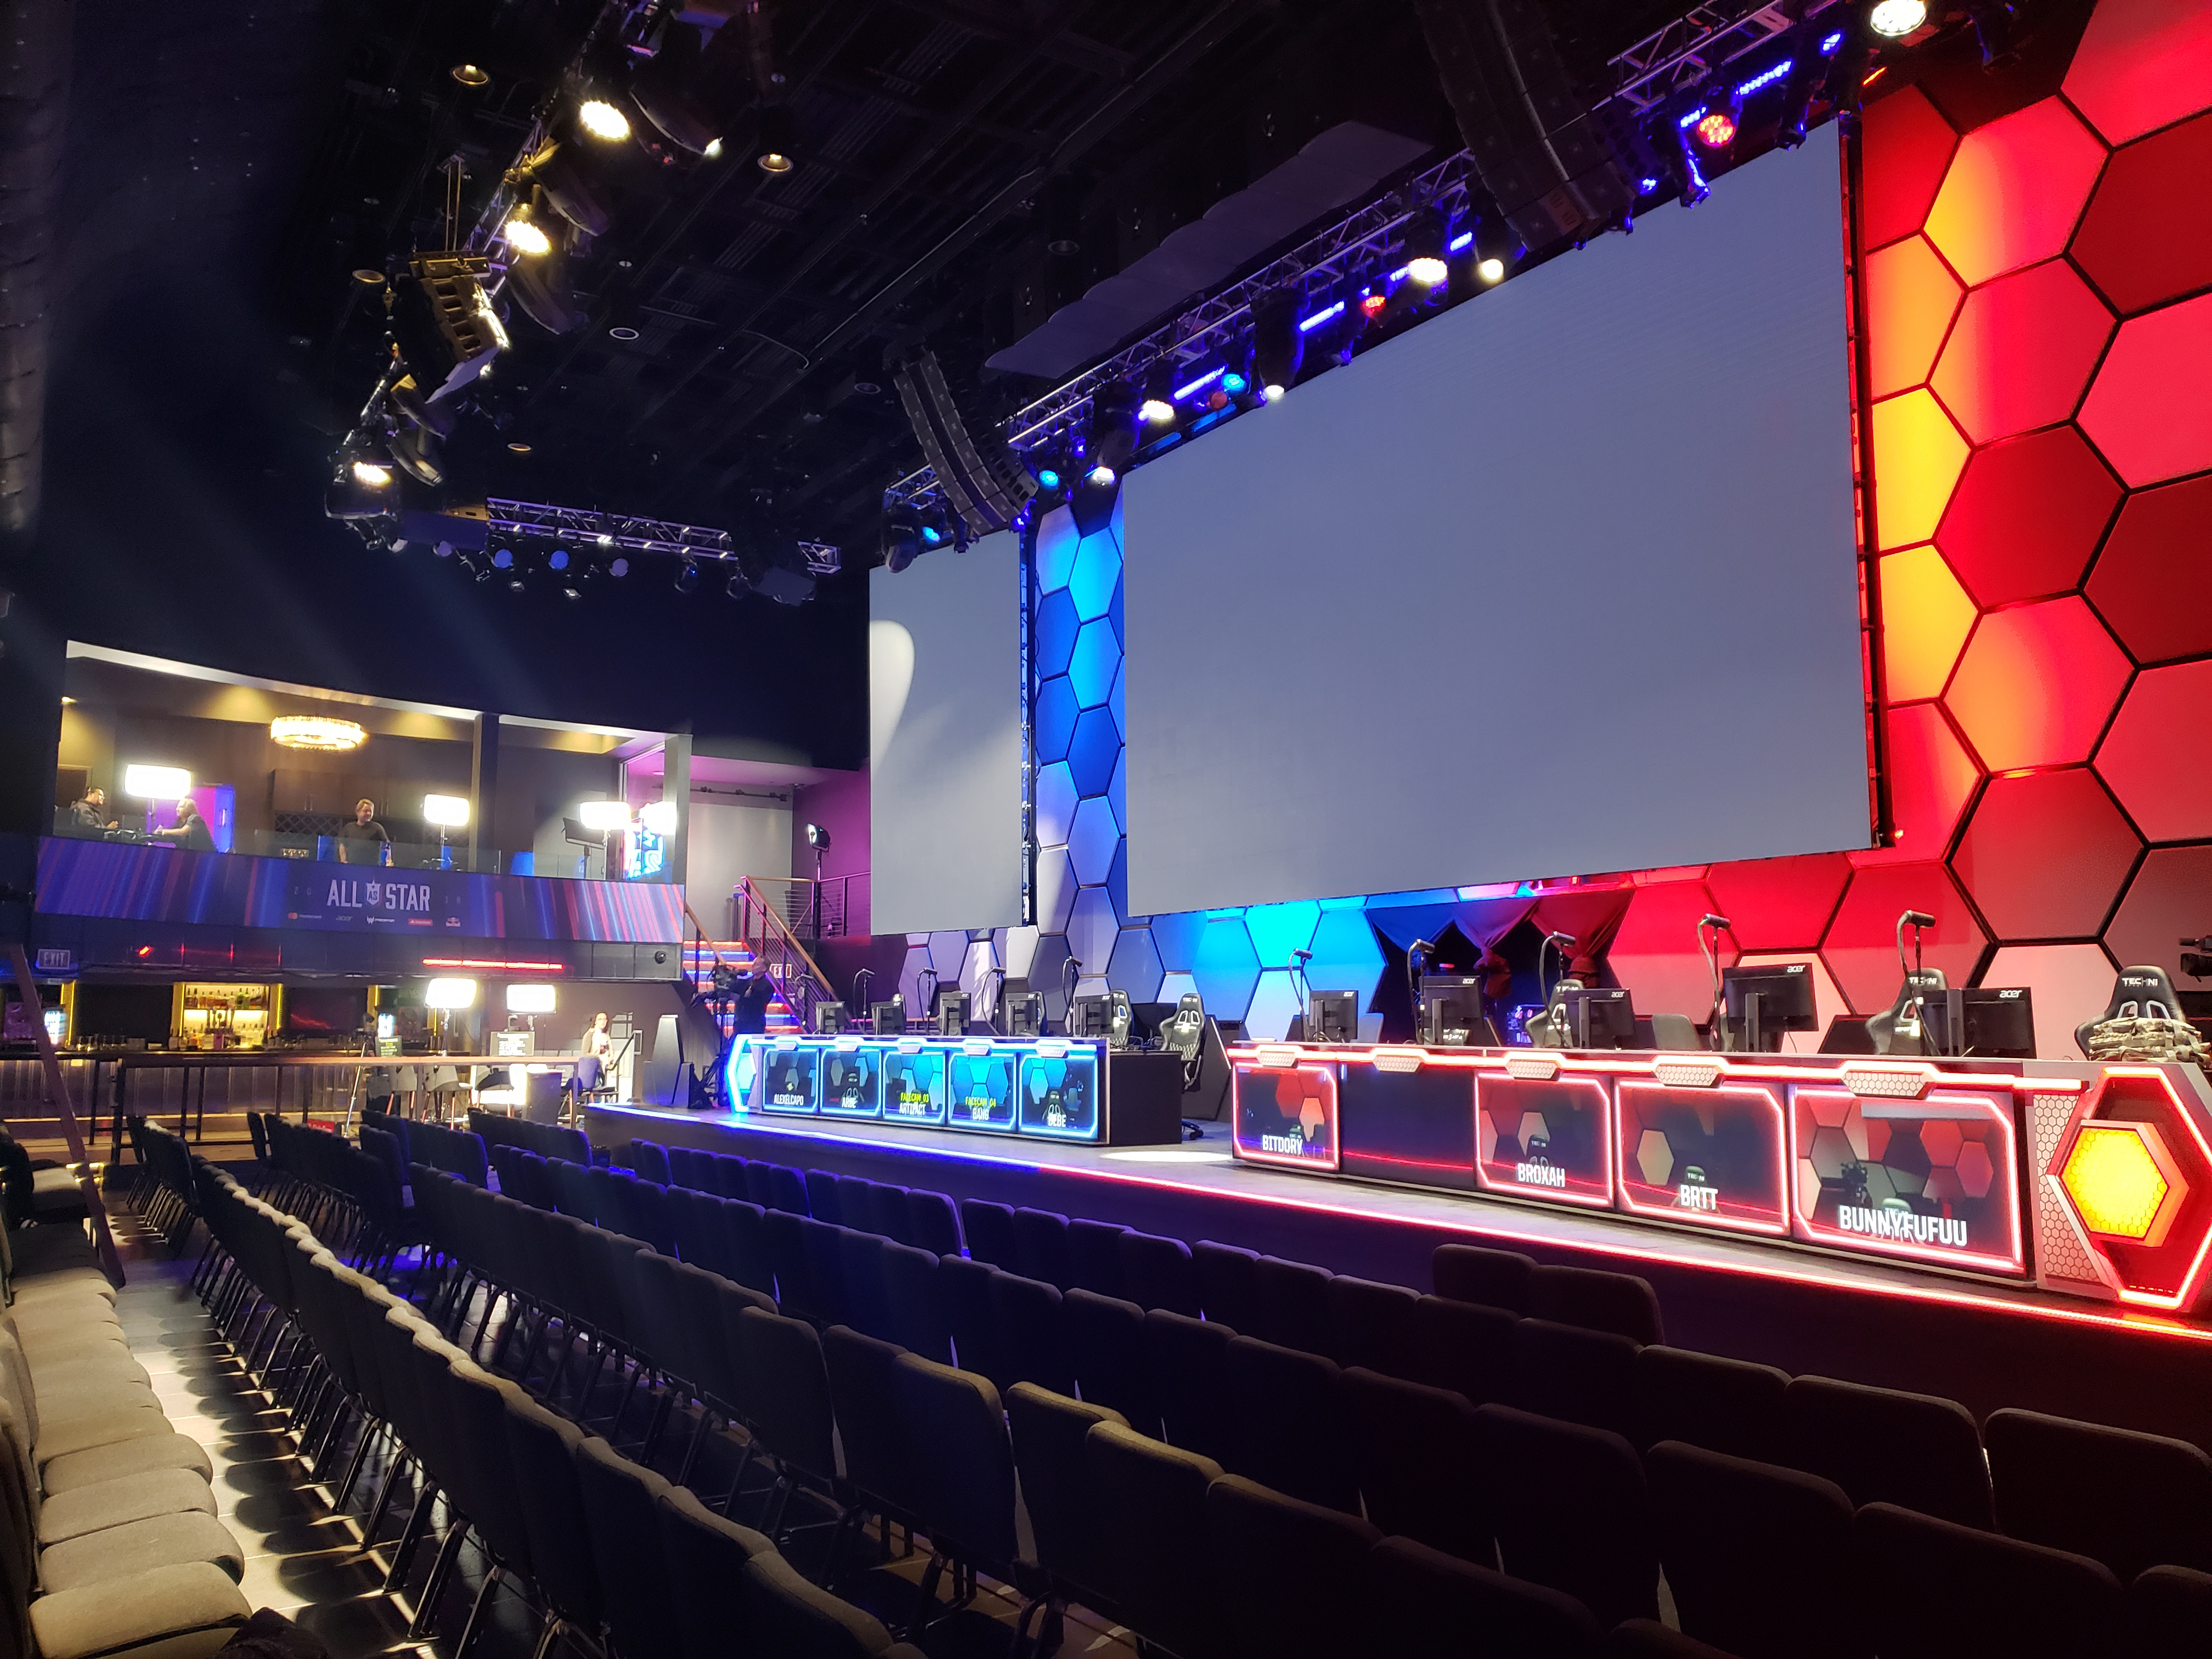 72 pro players and key esports influencers from across the globe will  compete in a range of tournaments and alternate game modes at All-Star 2018.